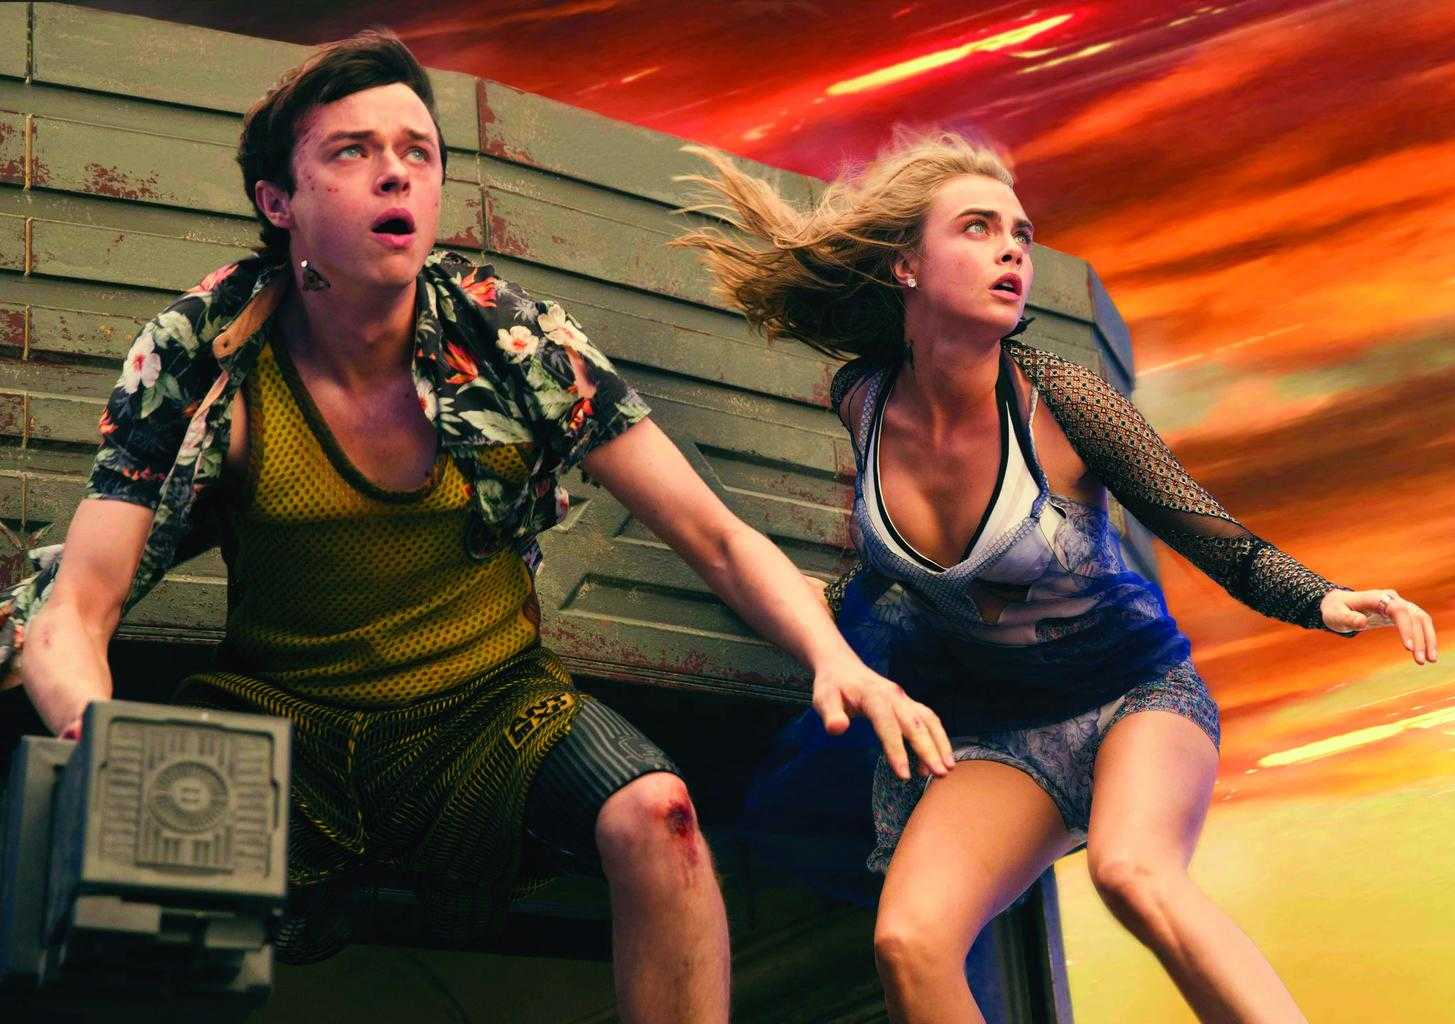 Film Title: Valerian and the City of a Thousand Planets